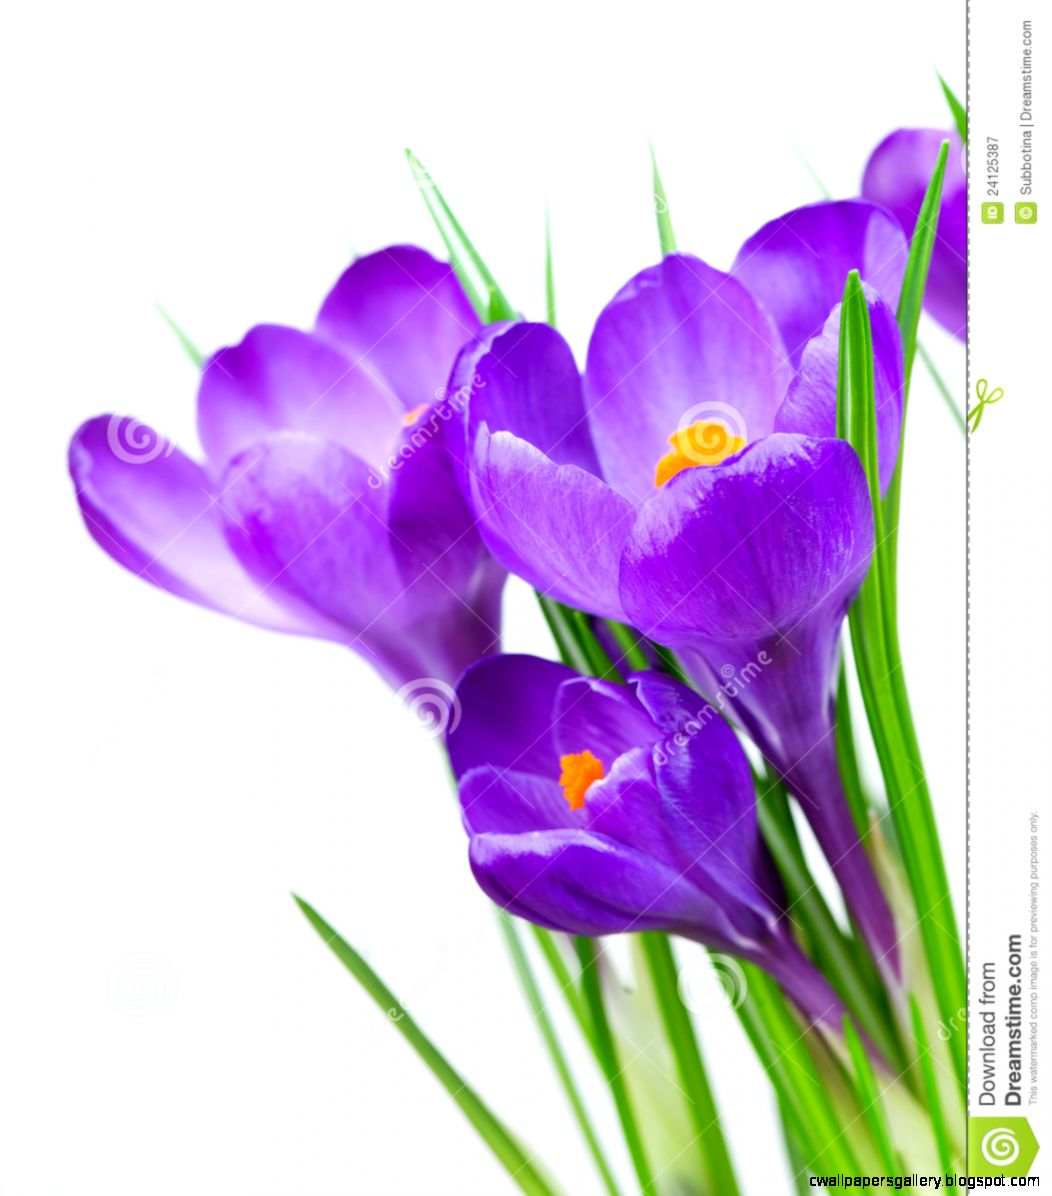 Crocus Spring Flowers Royalty Free Stock Photography   Image 24125387